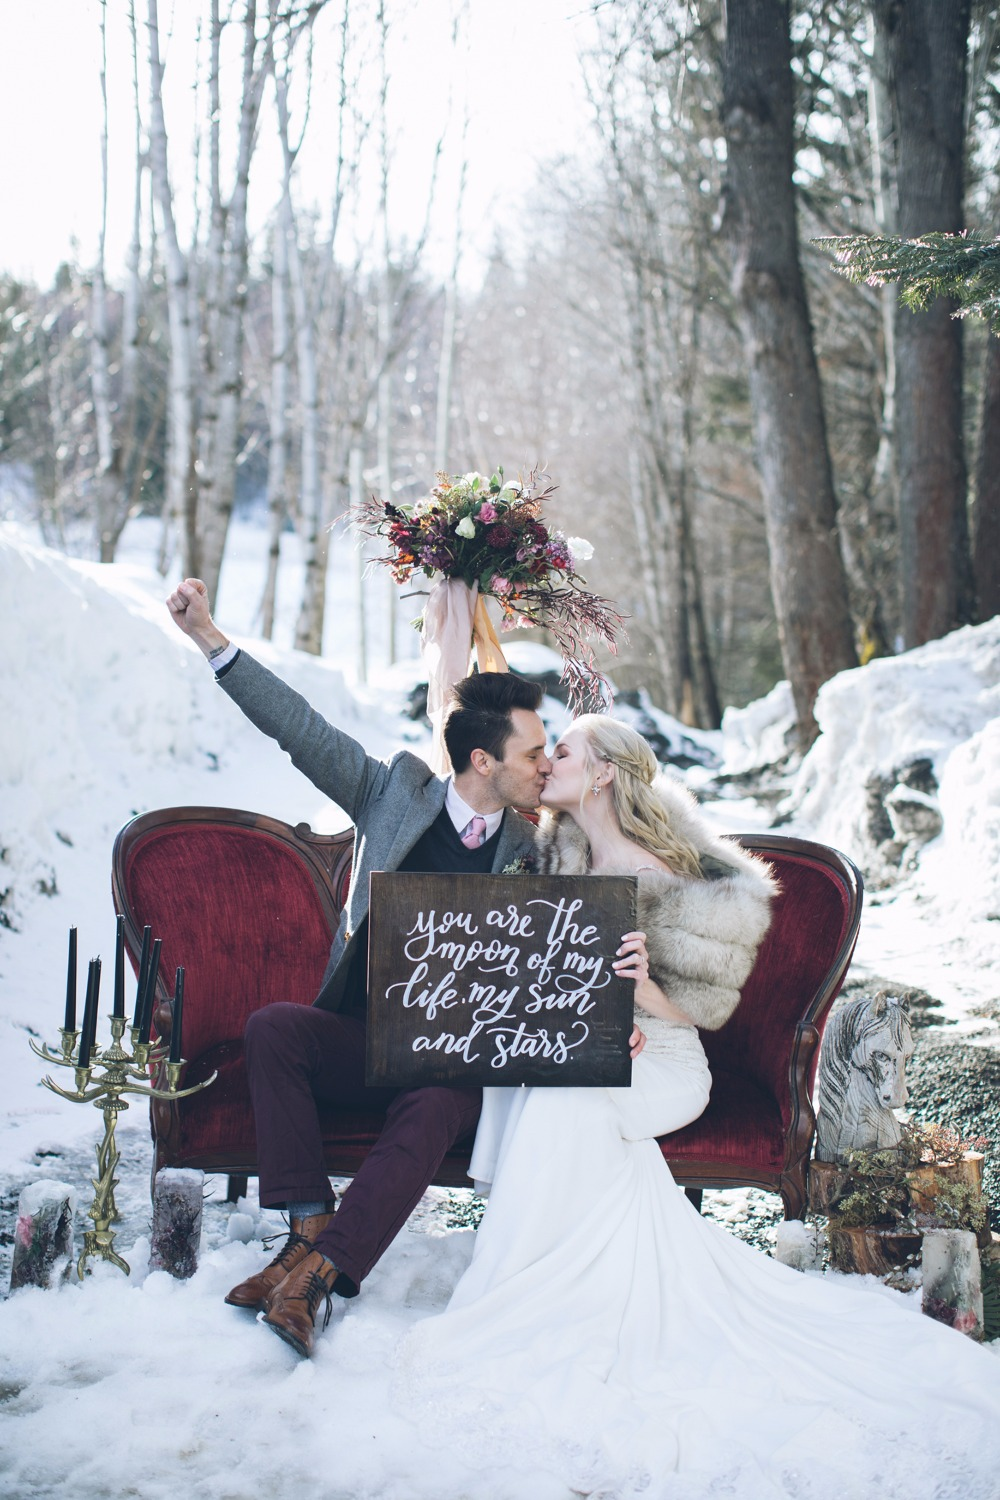 Trending white winter wedding ideas will warm your heart 196 white winter wedding ideas will warm your heart junglespirit Gallery